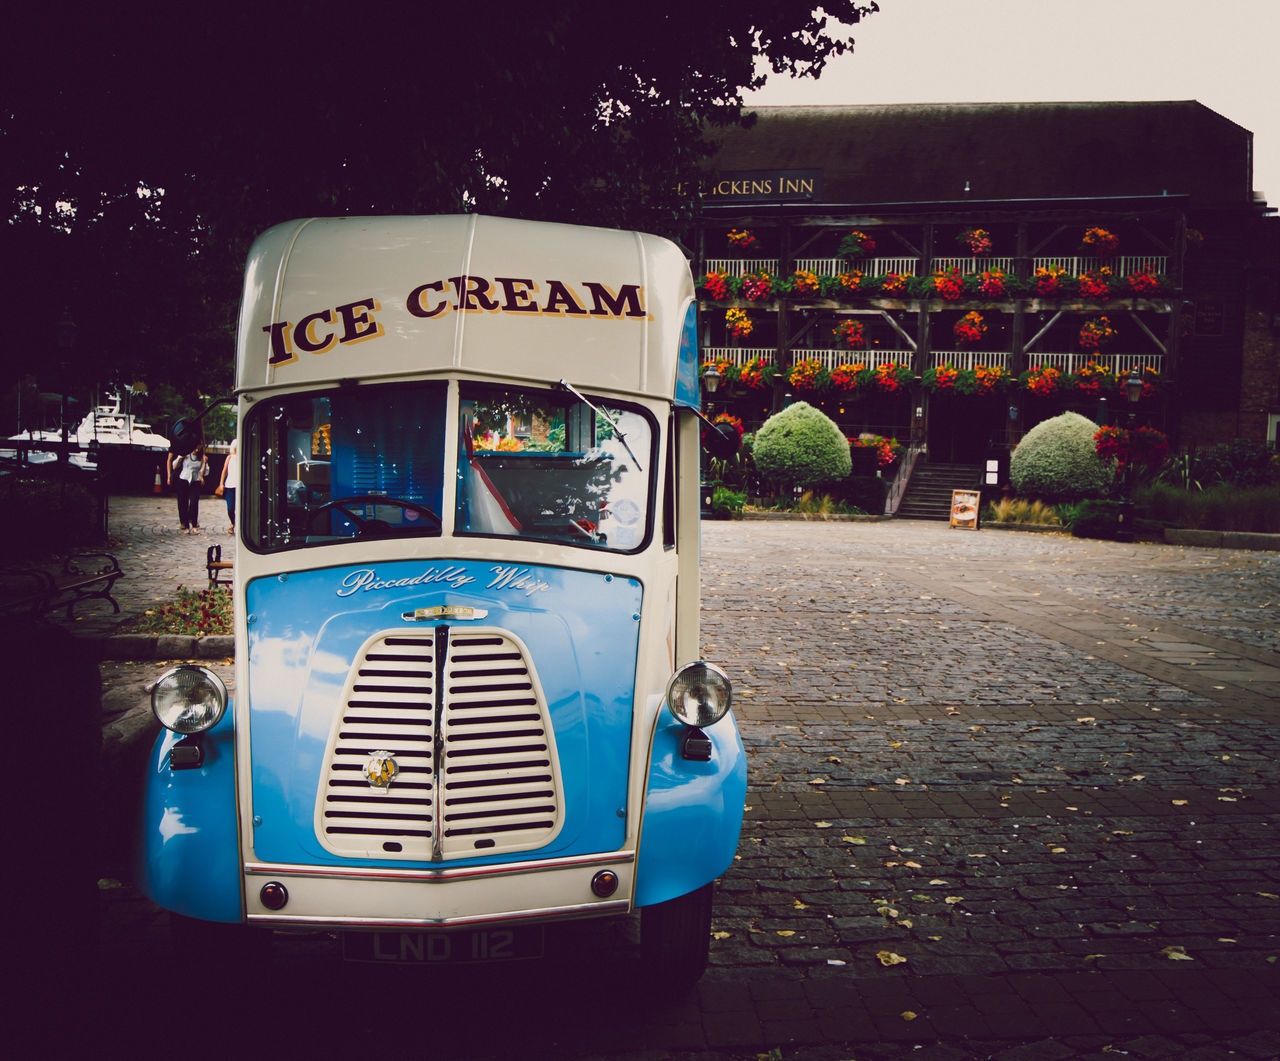 Ice cream? In this weather? Old-fashioned Blue Retail  Canon 650D Colour Of Life City London Docklands London Ice Cream Street Outdoors EyeEm Best Edits Eye For Photography Day Van St. Katherines Dock Canon August August 2016